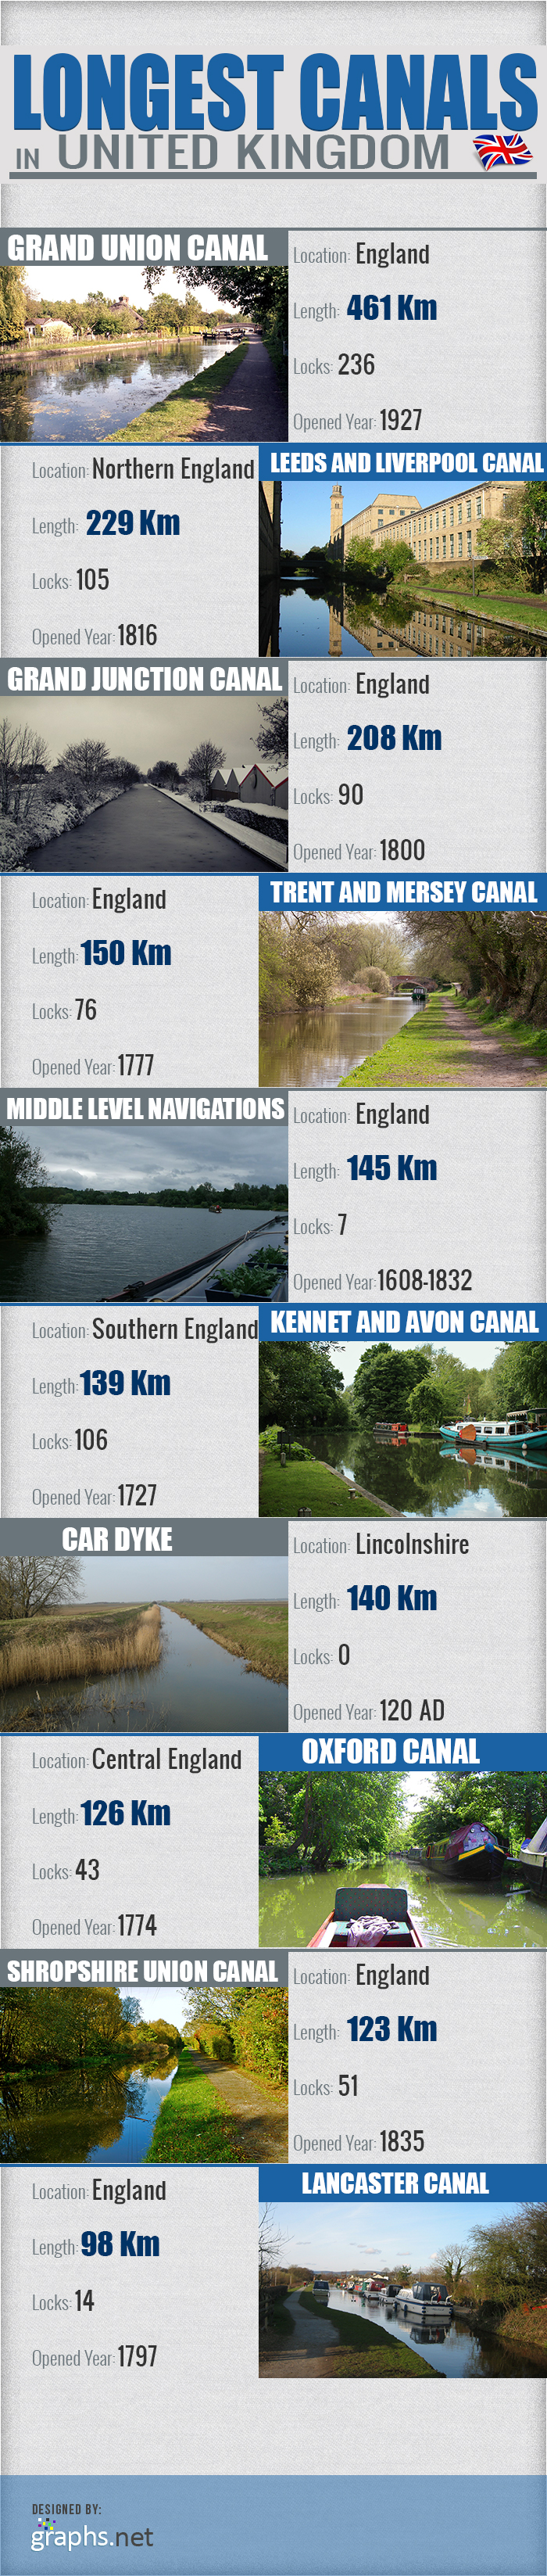 Longest-Canals-in-United-Kingdom